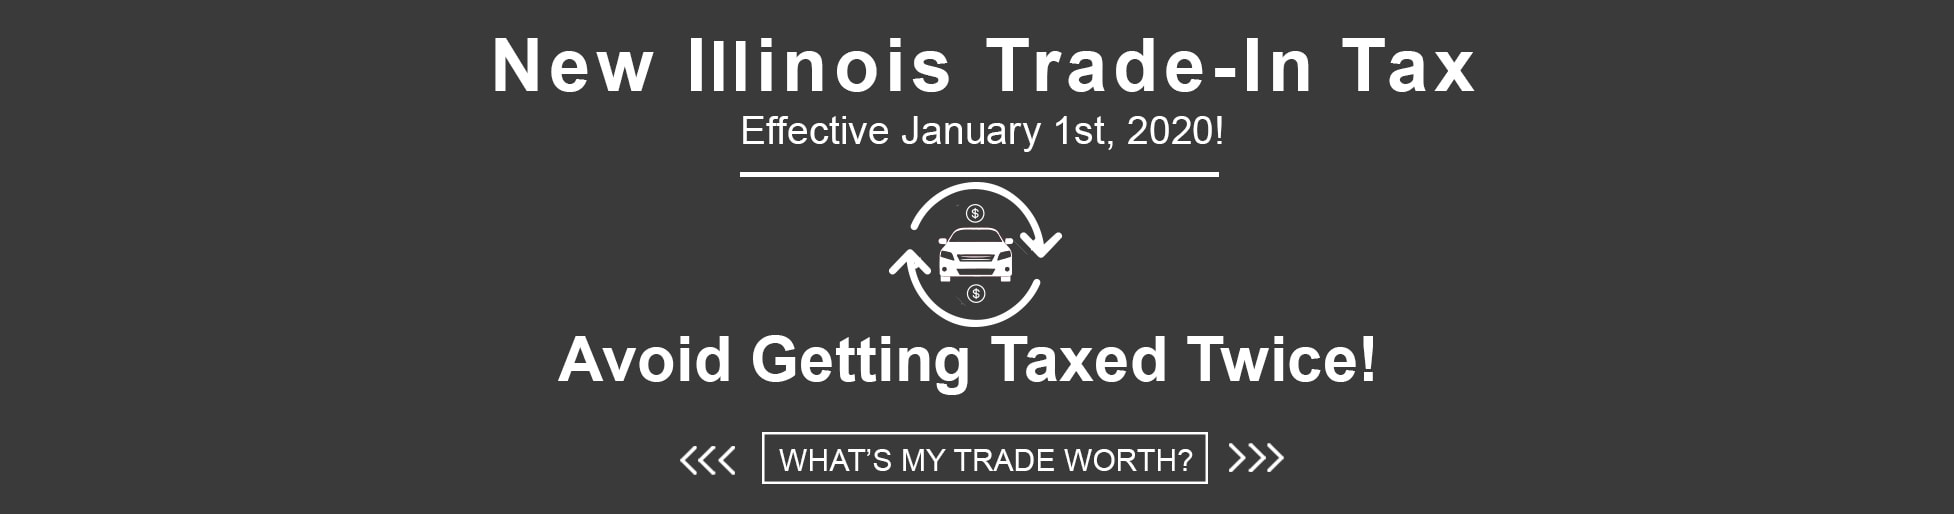 Appraise Your Trade-In Before The New Tax